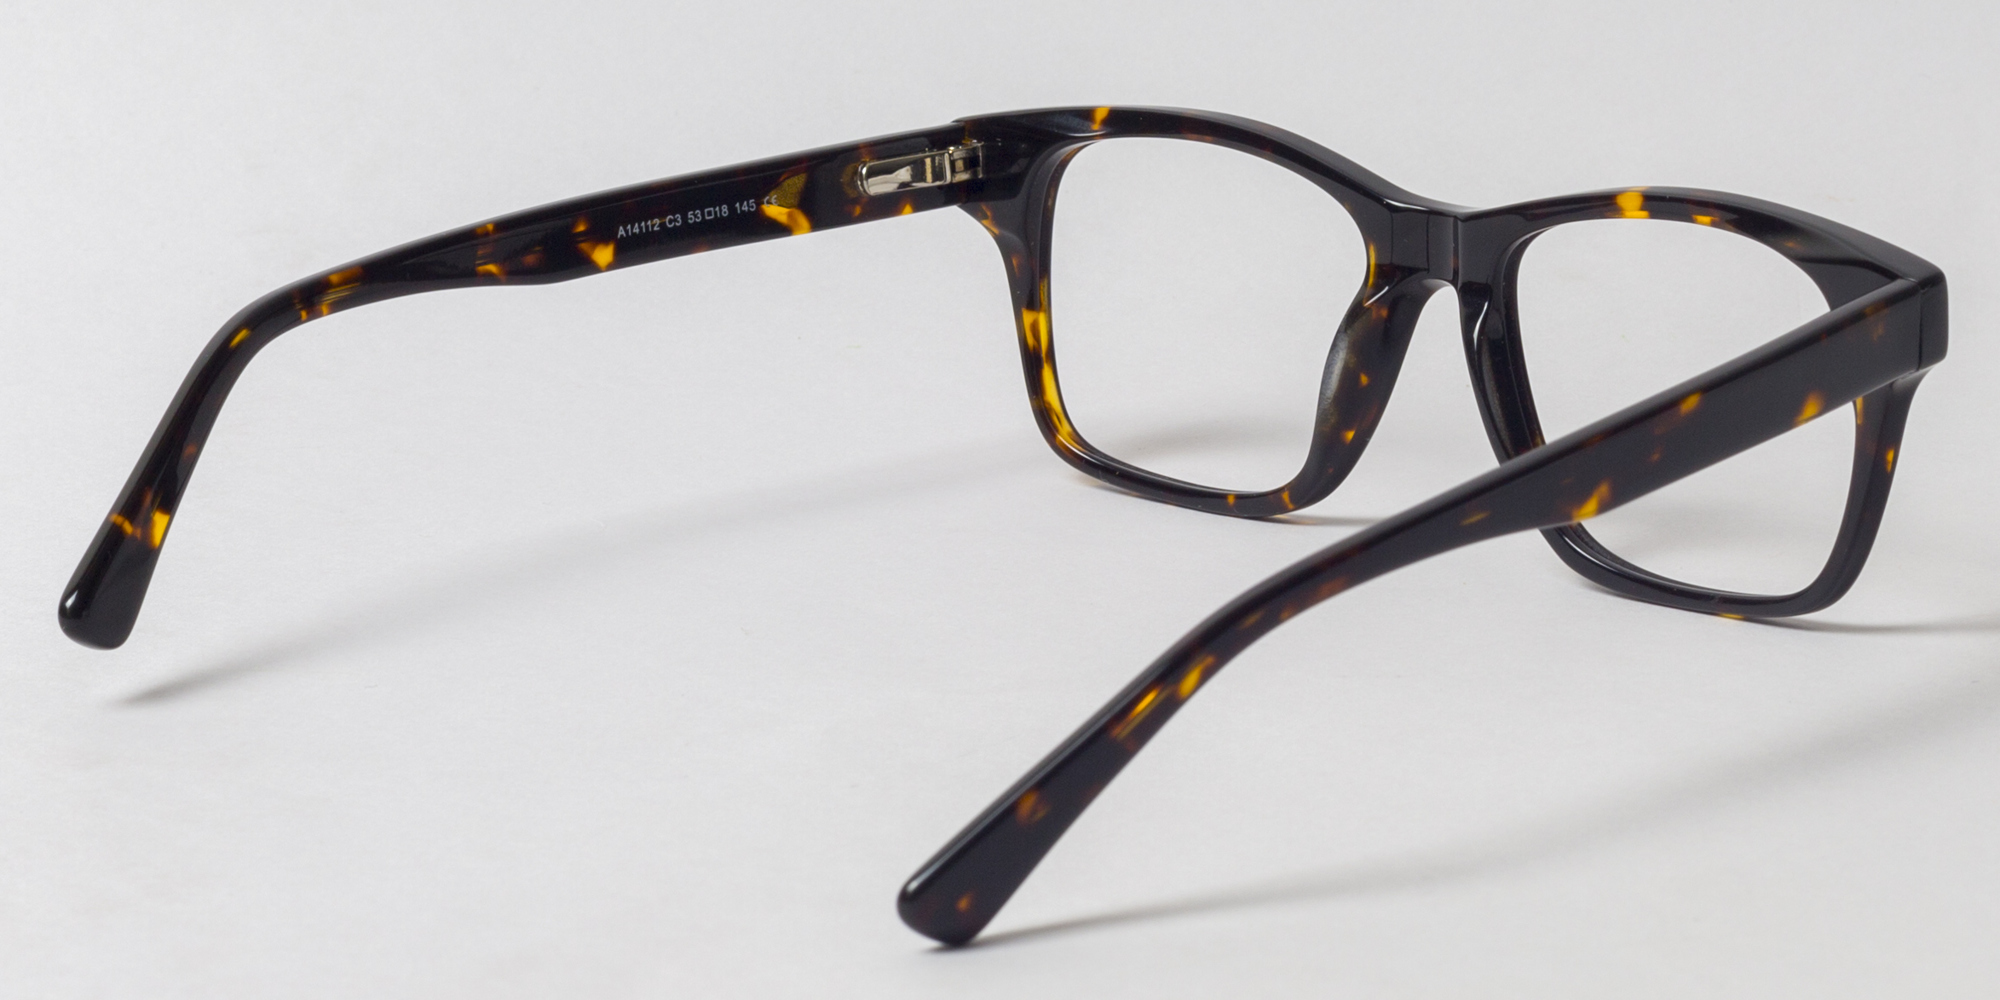 Zurich: Italian Acetate Optical Frame from $25